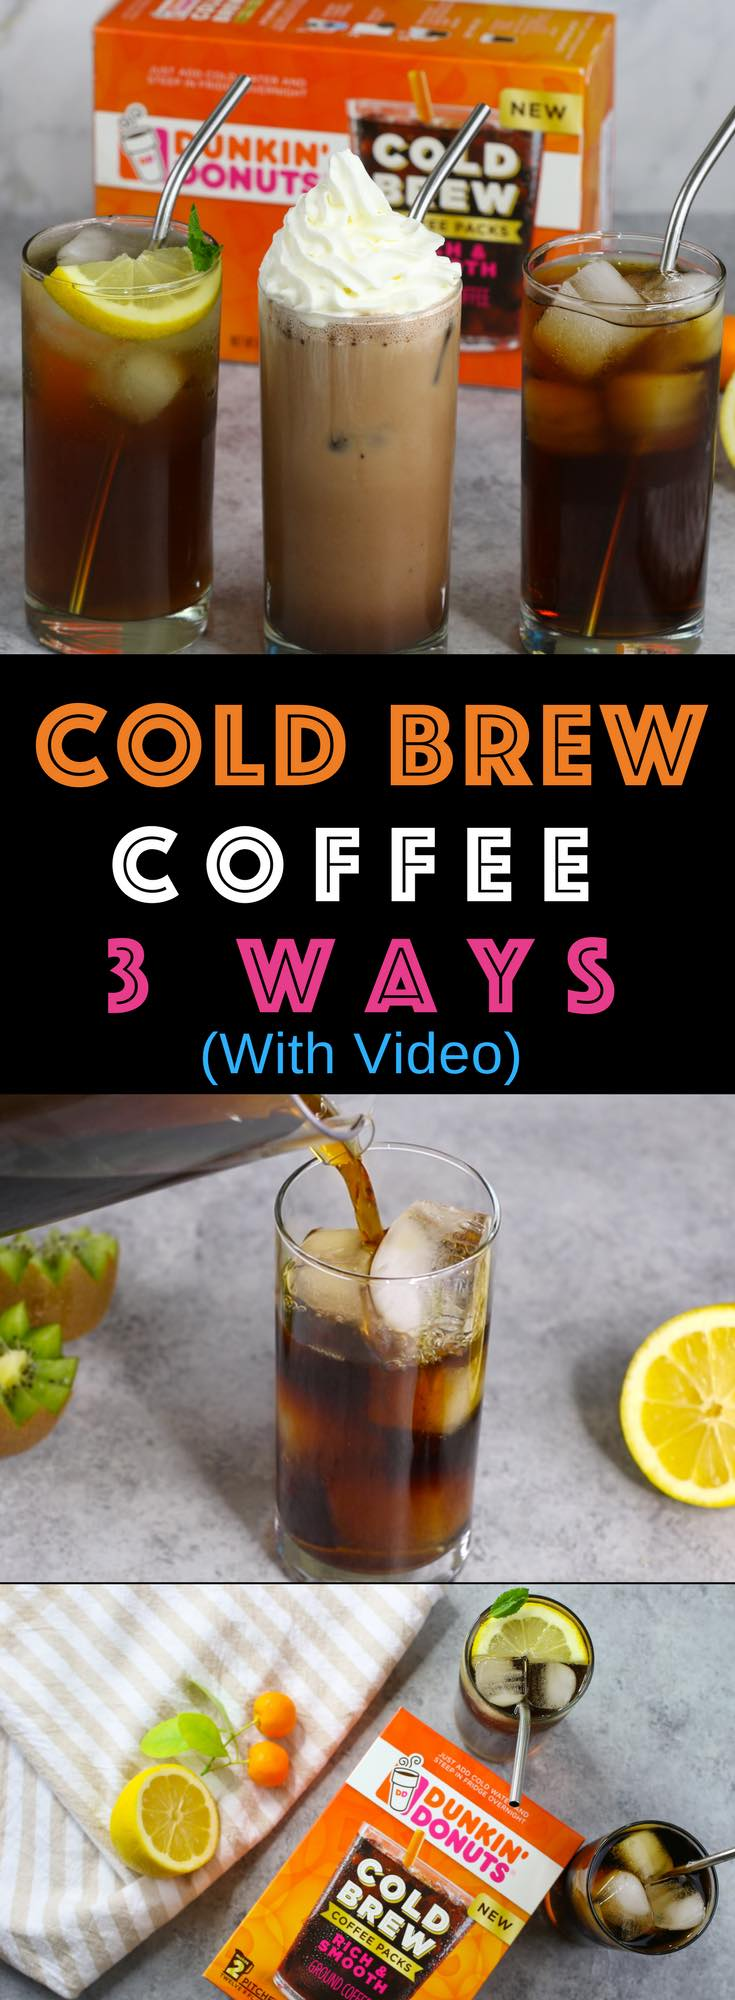 Cold Brew Coffee is so smooth and balanced without the acidity and bitterness of drip coffee. It's so easy to make at home by steeping Dunkin' Donuts Cold Brew coffee packs in cold water overnight. Make it 3 different ways: Cold Brew with Simple Syrup, Cold Brew Mochas and Cold Brew Lemonade. Perfect for parties and barbecues in summer and every day year round! Video tutorial #coldbrew #DunkinYouBrewYou #walmart AD